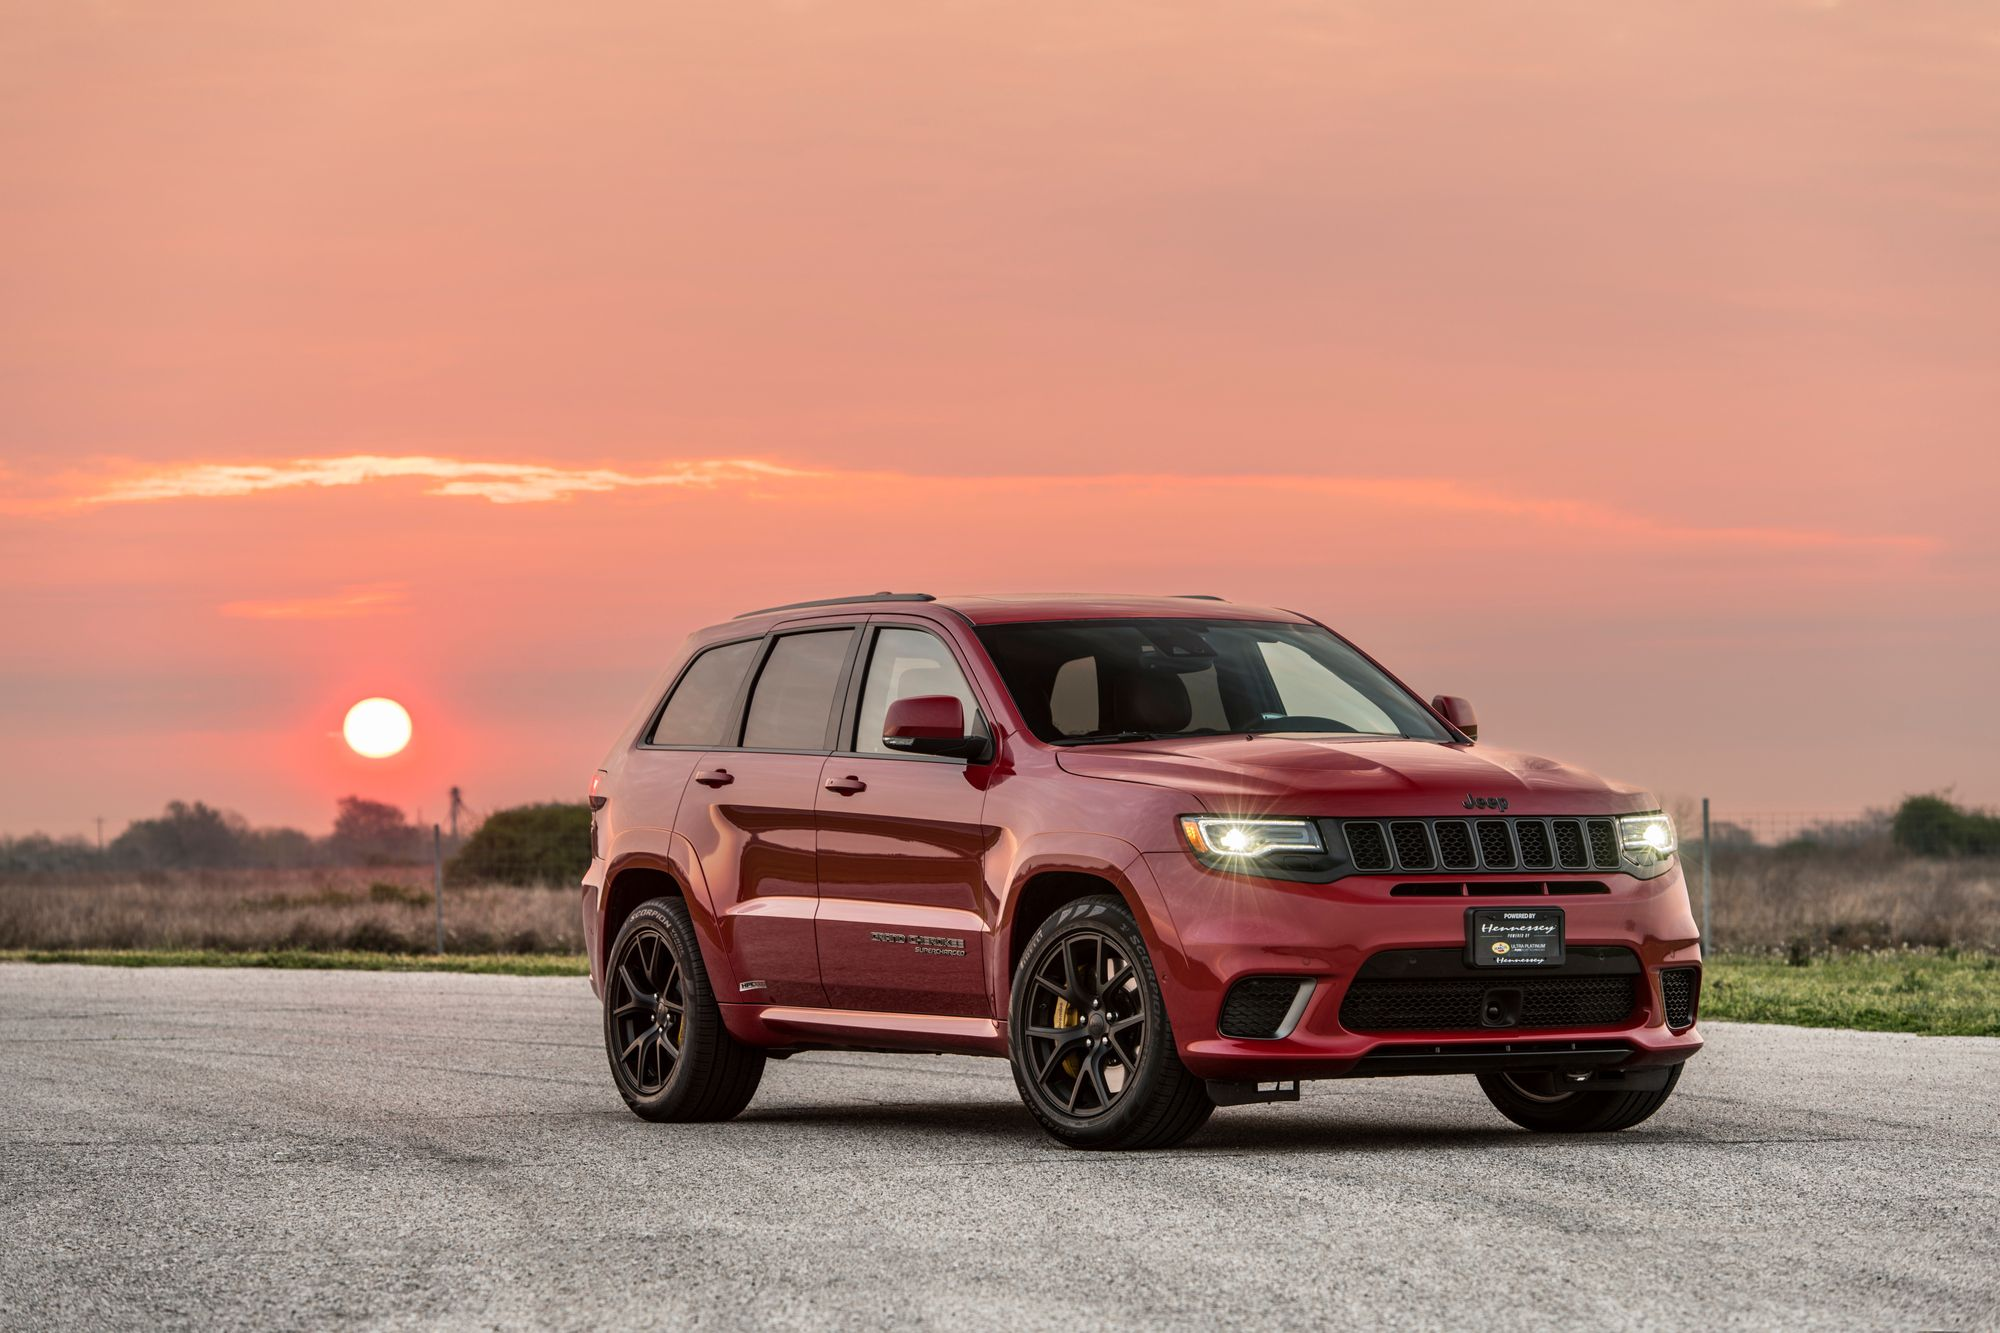 Which One Are You Taking For Your Weekend Driver Hennessey Hennesseyperformance Tunerschool Jeeplife Jeepgrandcherokee Grandcherokee Trackhawk S In 2020